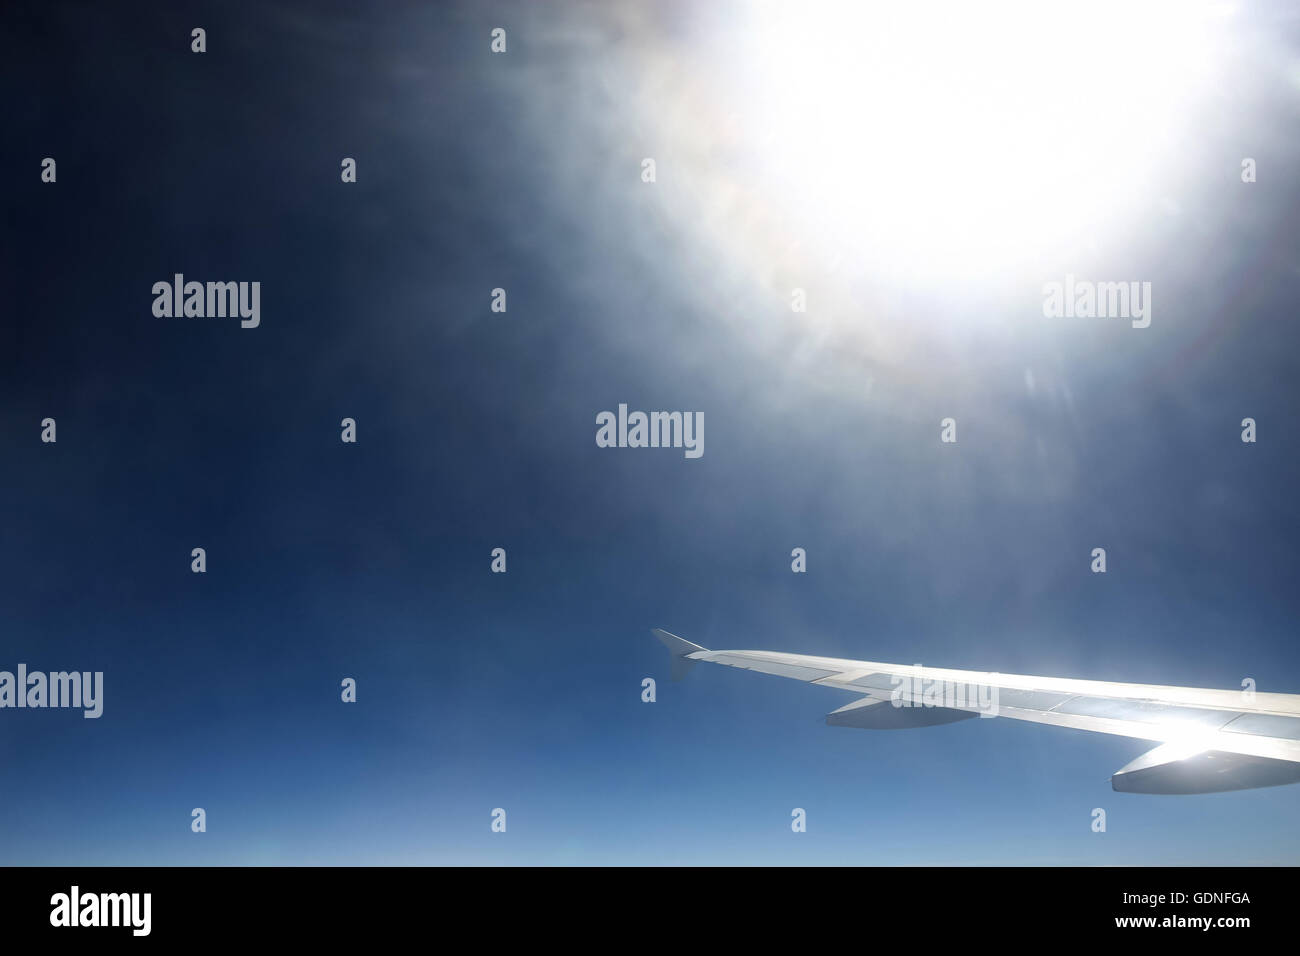 A view of the airplane wing and sunlight from the airplane. - Stock Image